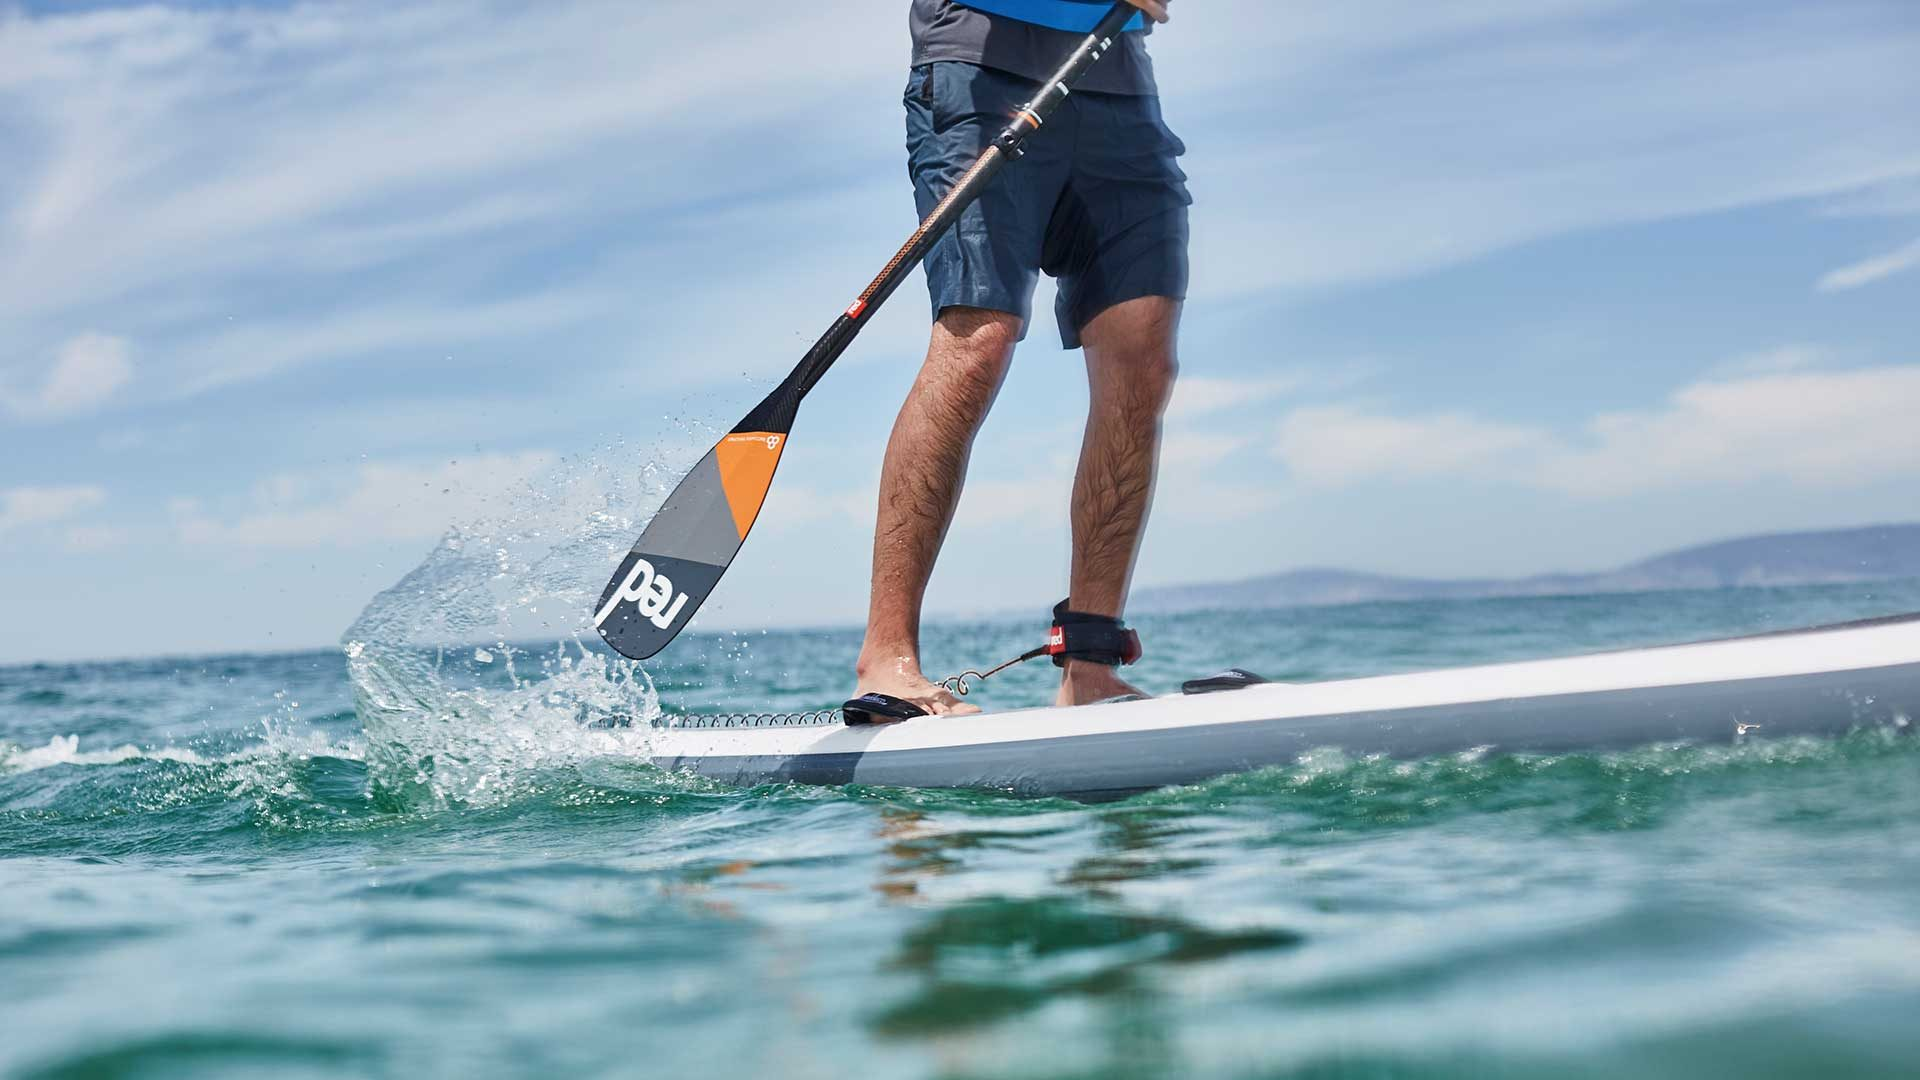 redpaddleco-126-x-26-elite-inflatable-paddle-board-desktop-gallery-2